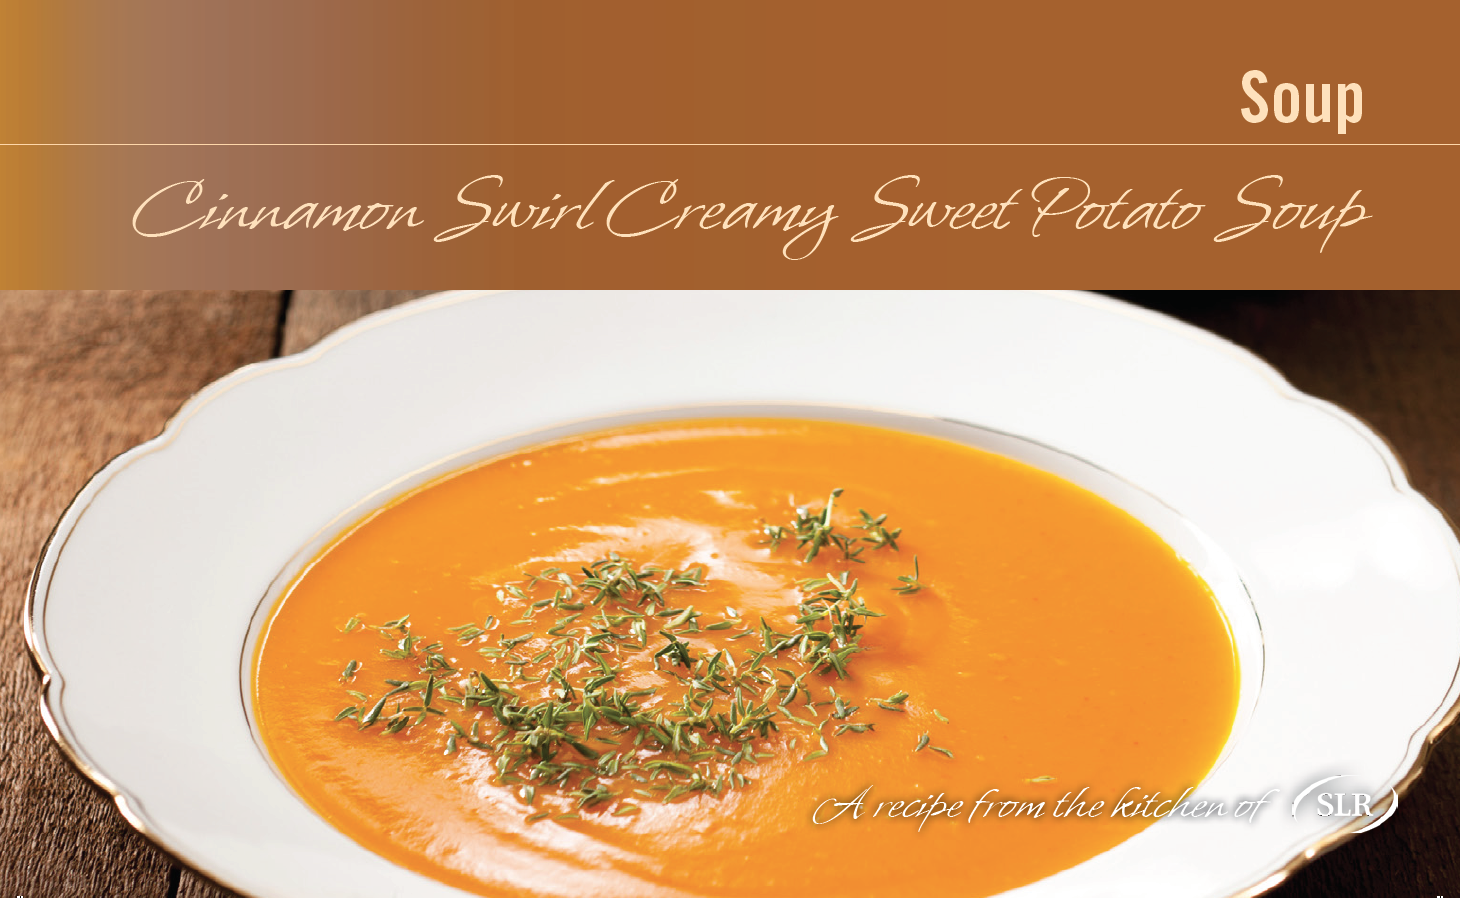 Cinnamon Swirl Creamy Sweet Potato Soup recipe card